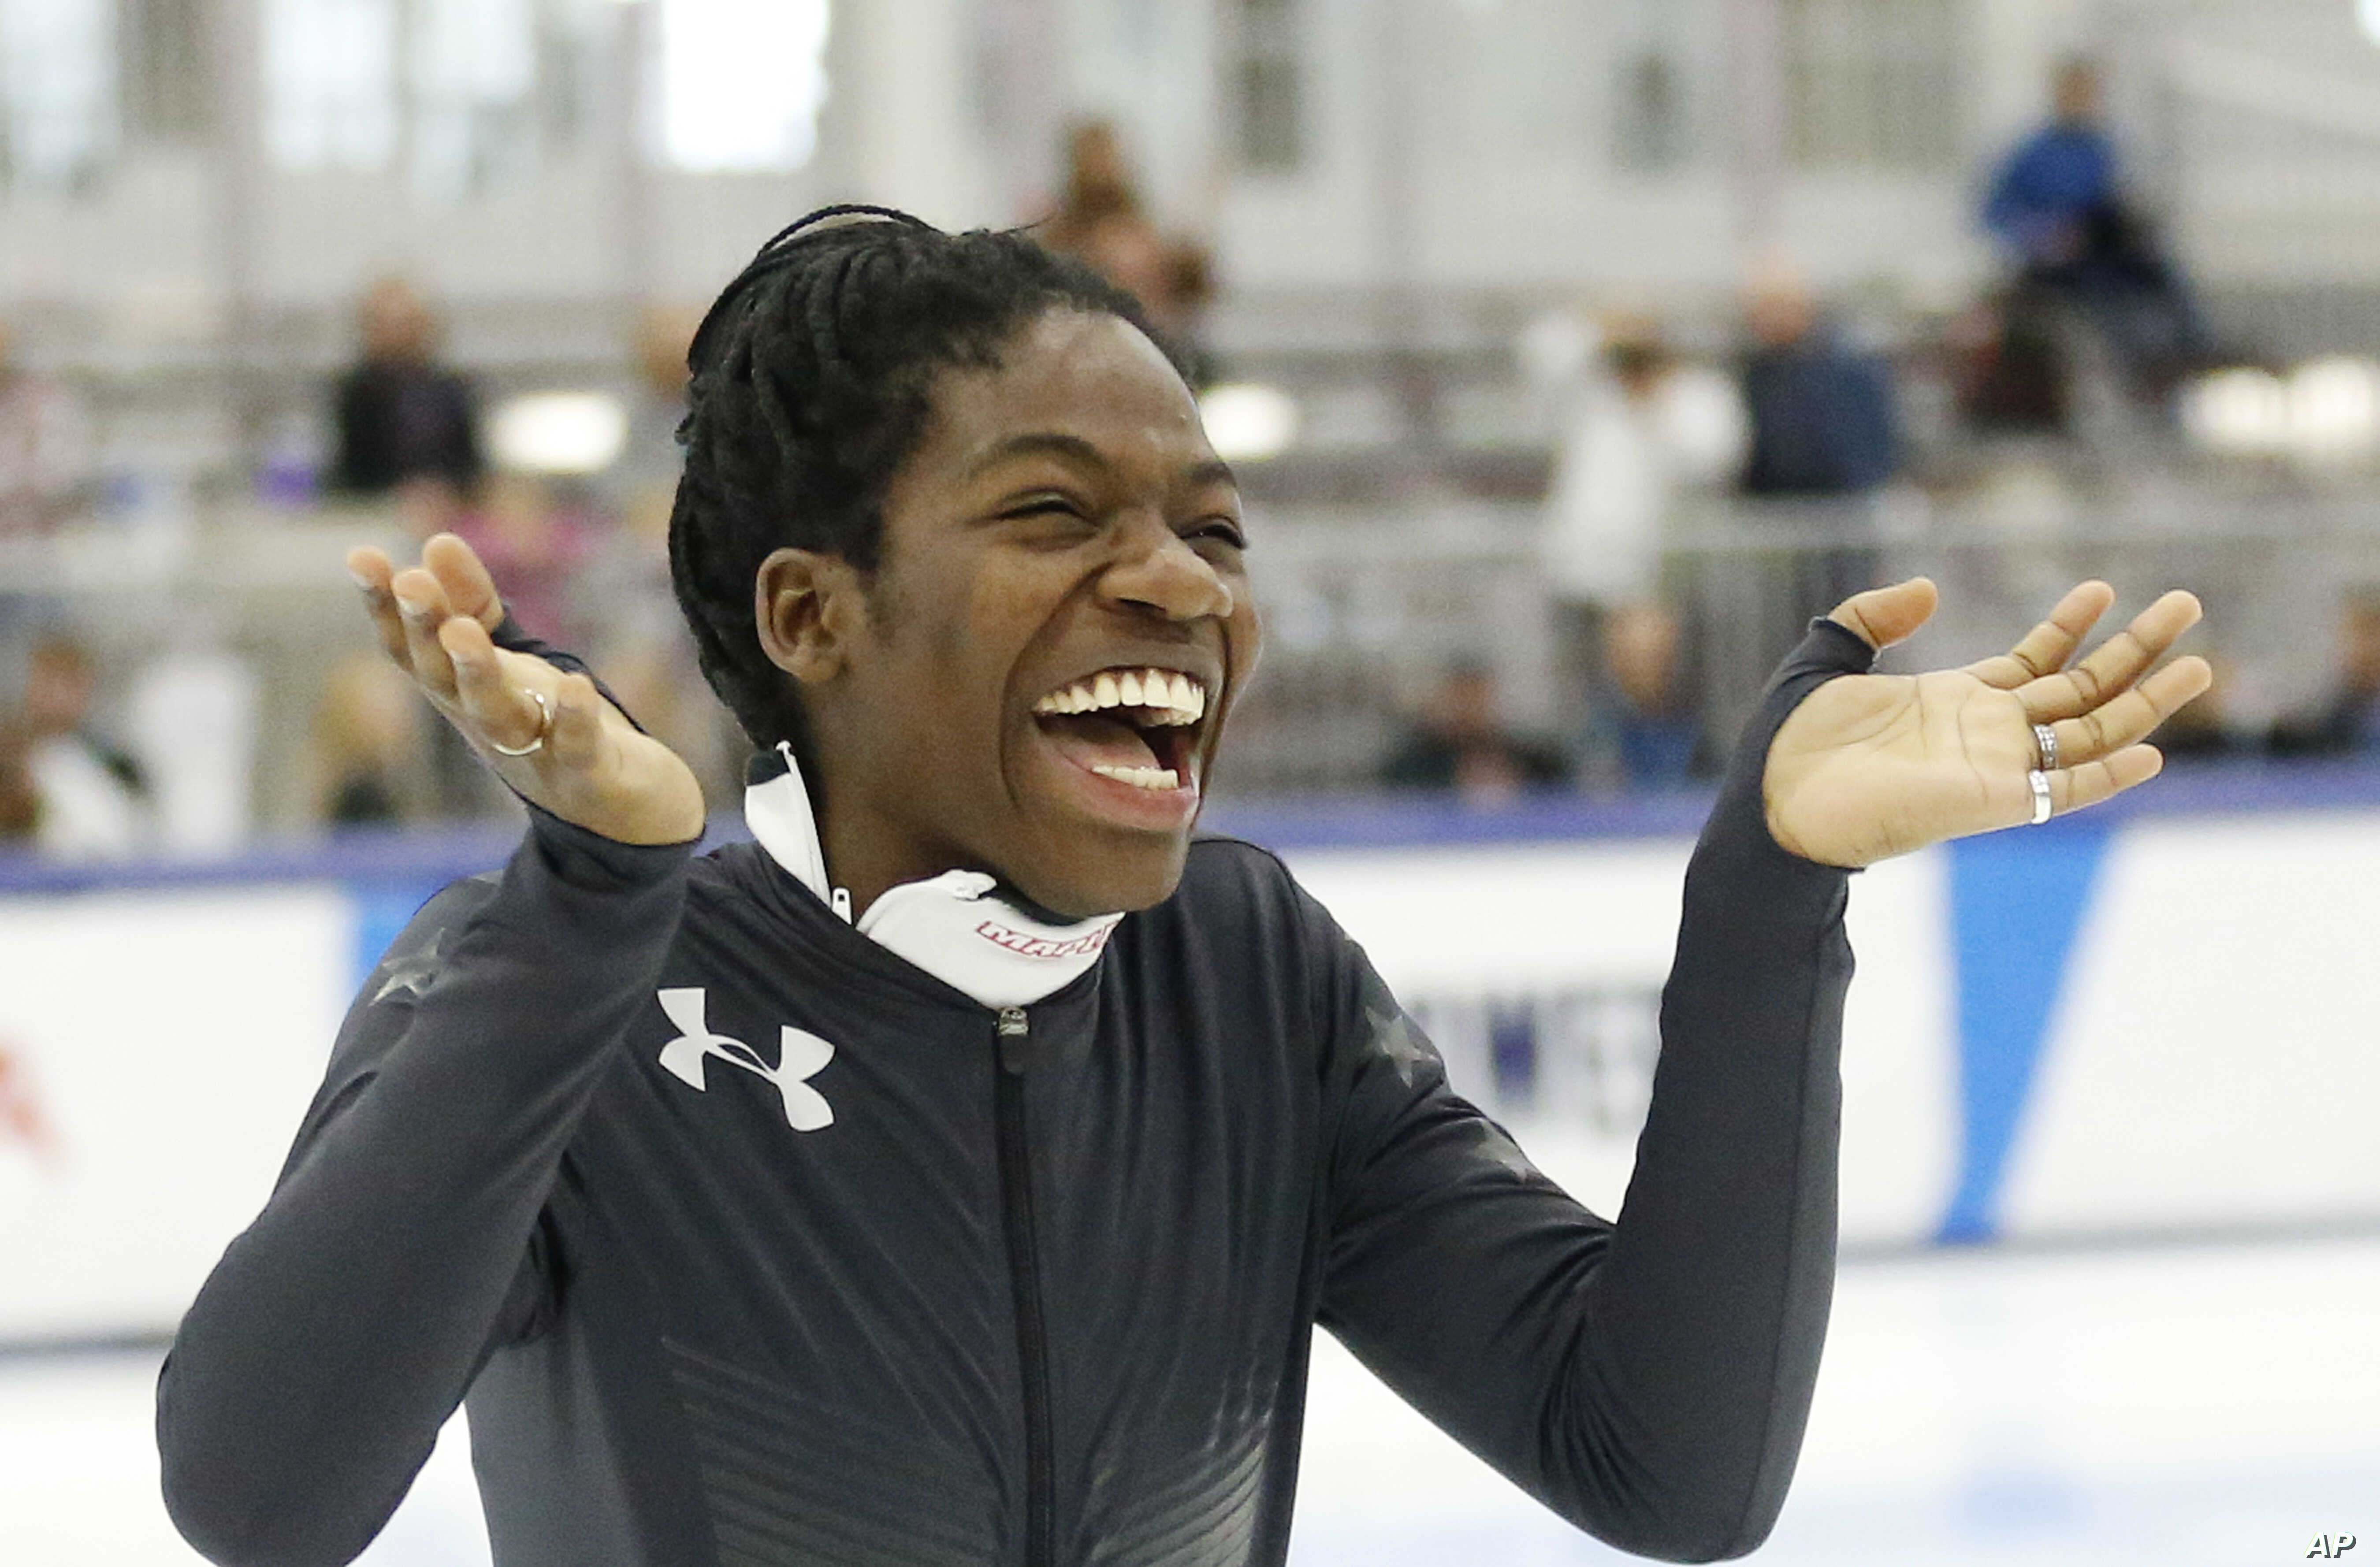 Maame Biney reacts during a medal ceremony after winning women's 500-meter A final race during the U.S. Olympic short track speedskating trials, Dec. 16, 2017, in Kearns, Utah.